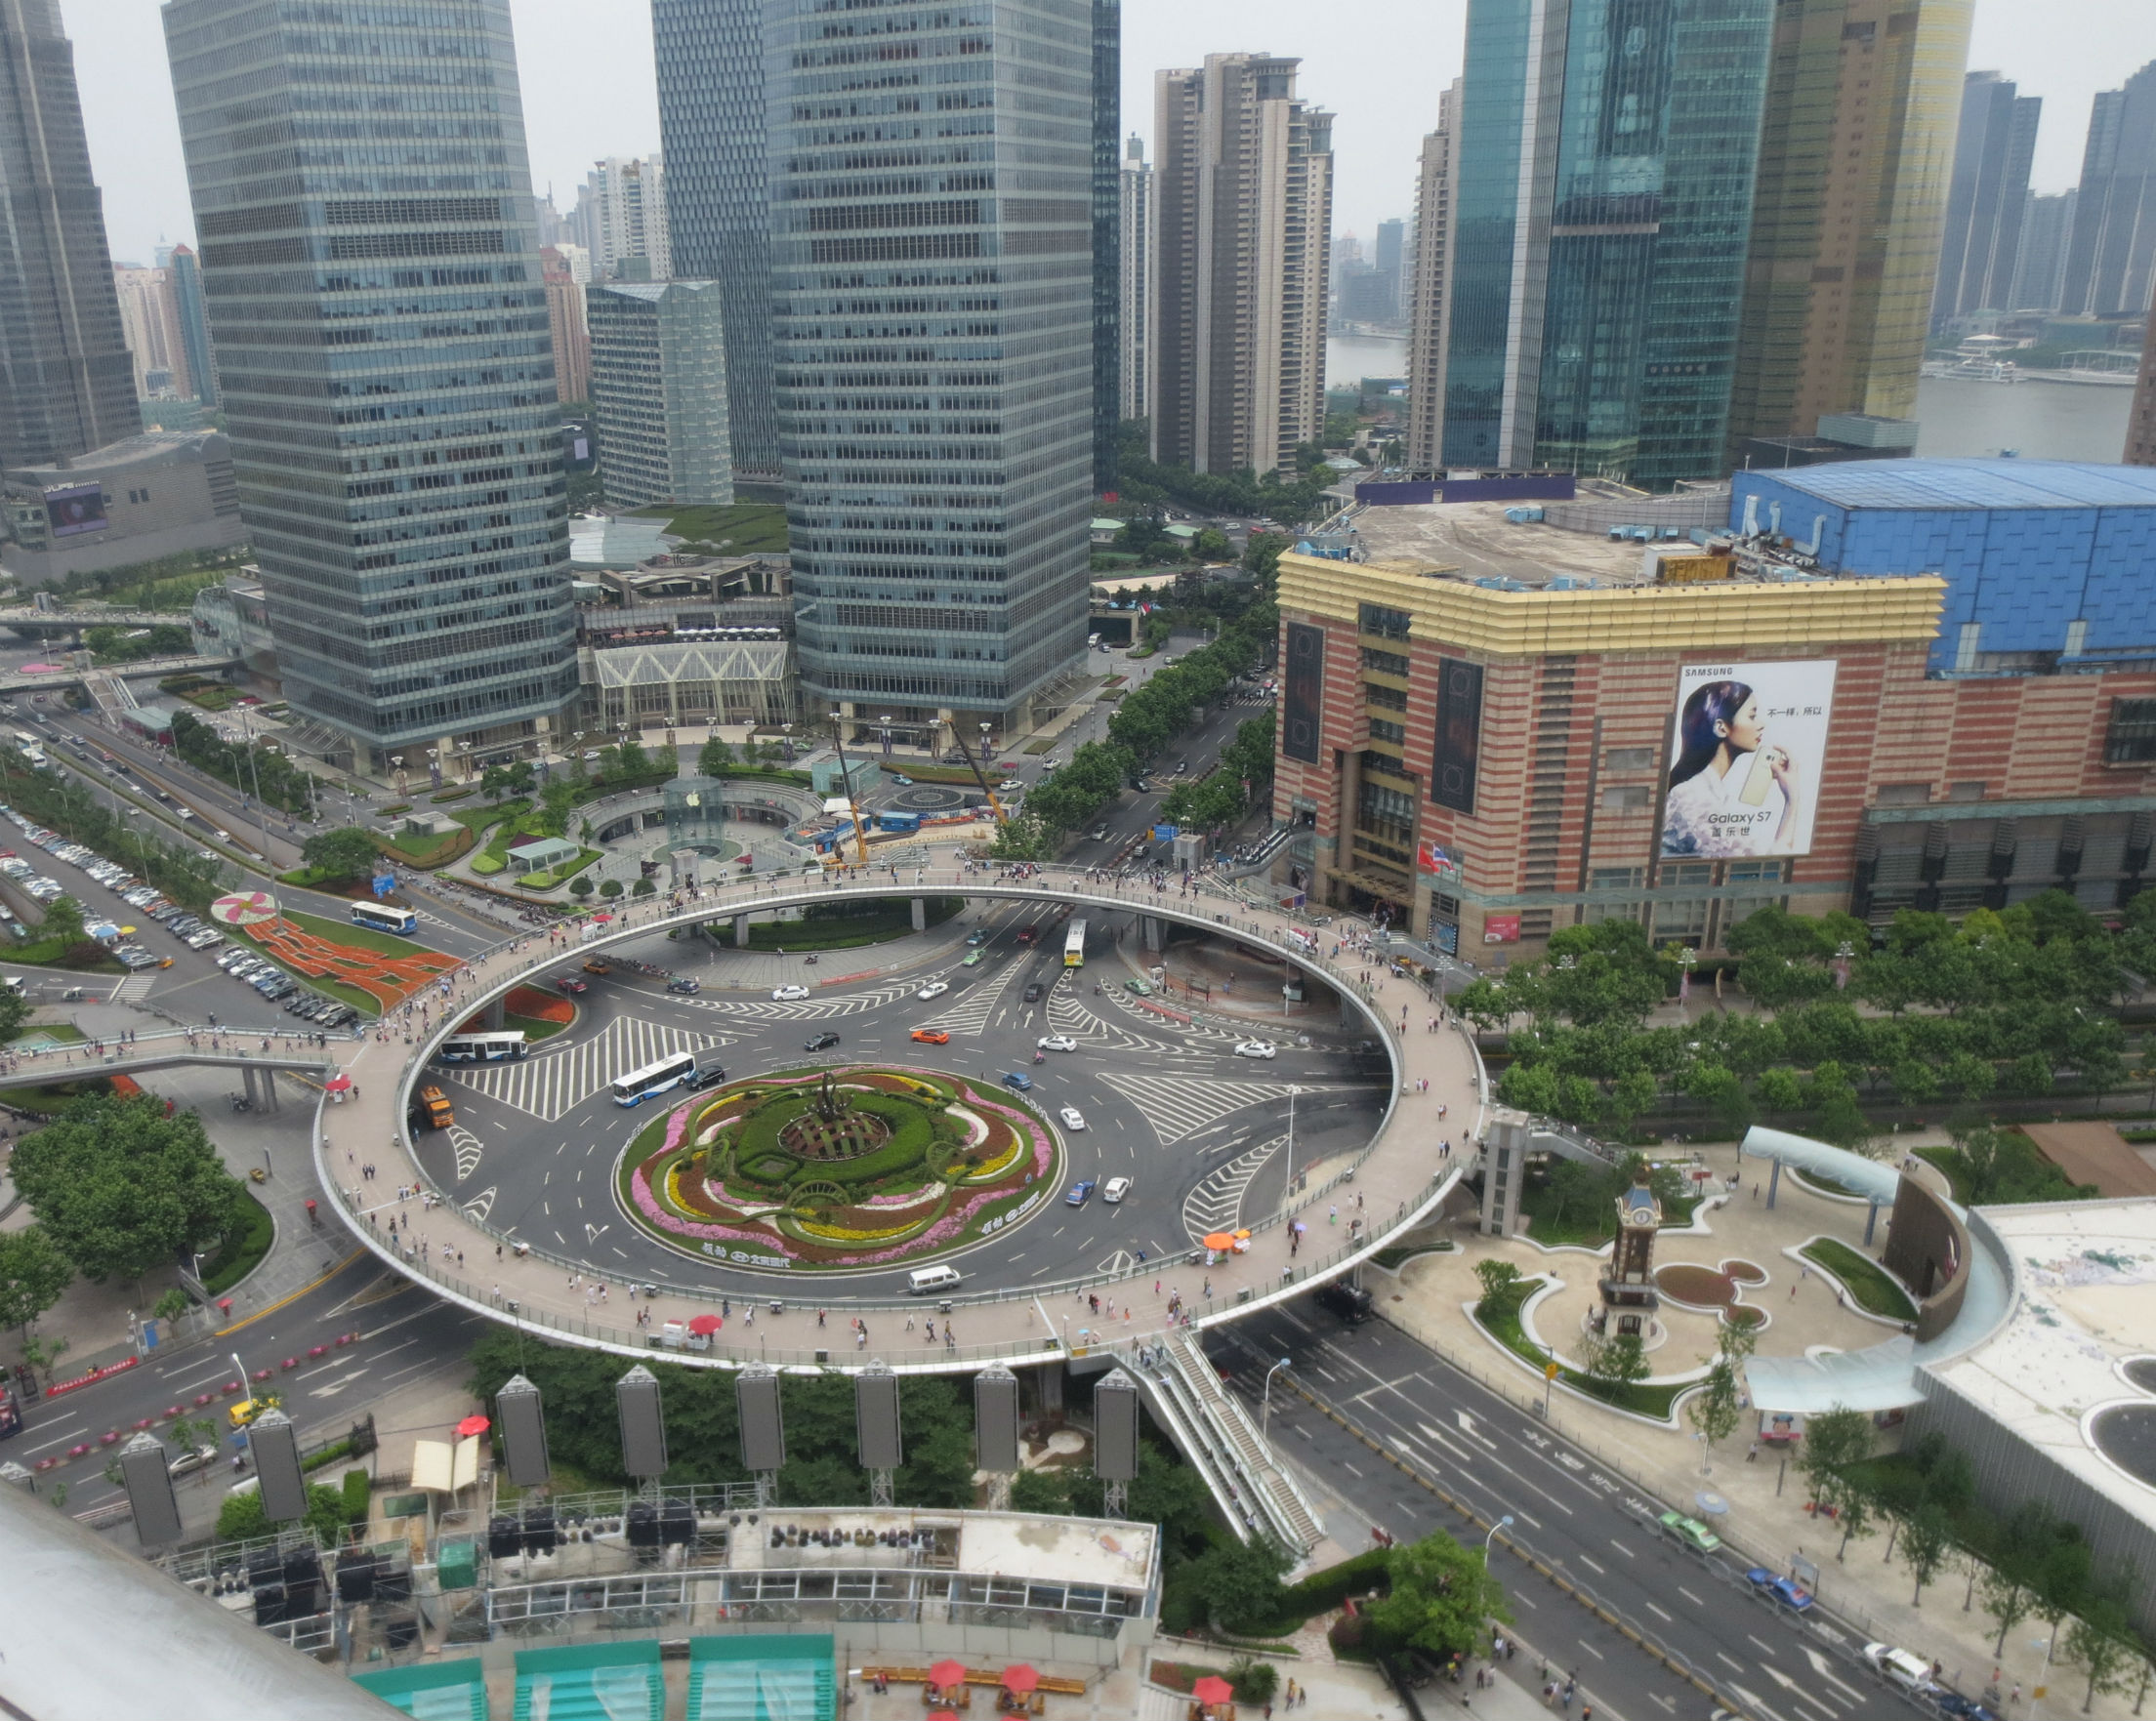 Circular sky walkways in Shanghai Pudong district